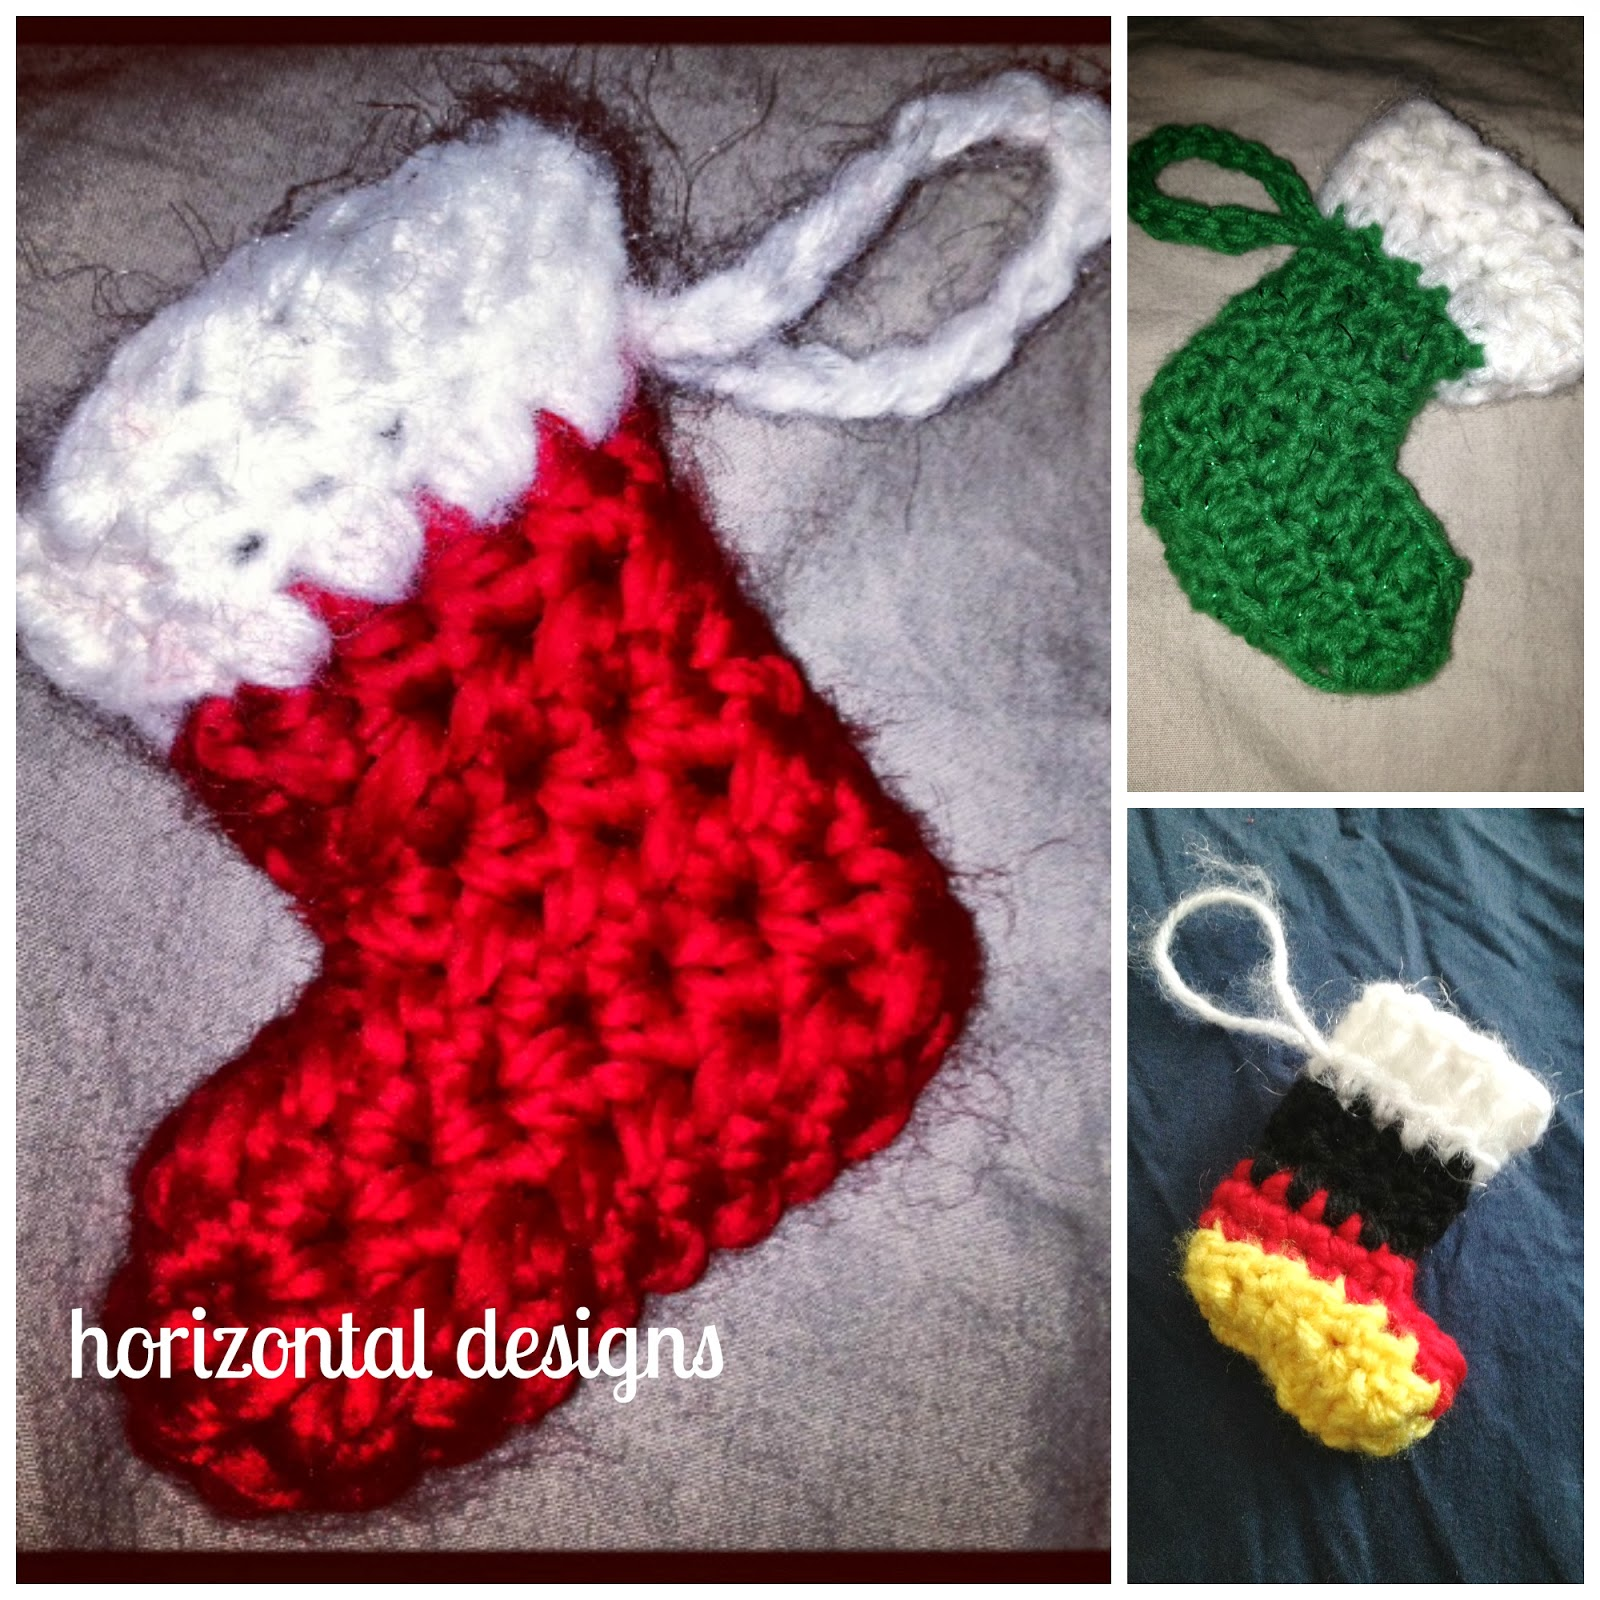 Free Crochet Patterns For Mini Christmas Stockings : Studio Create: FREE CROCHET PATTERN: Marvelous Mini ...